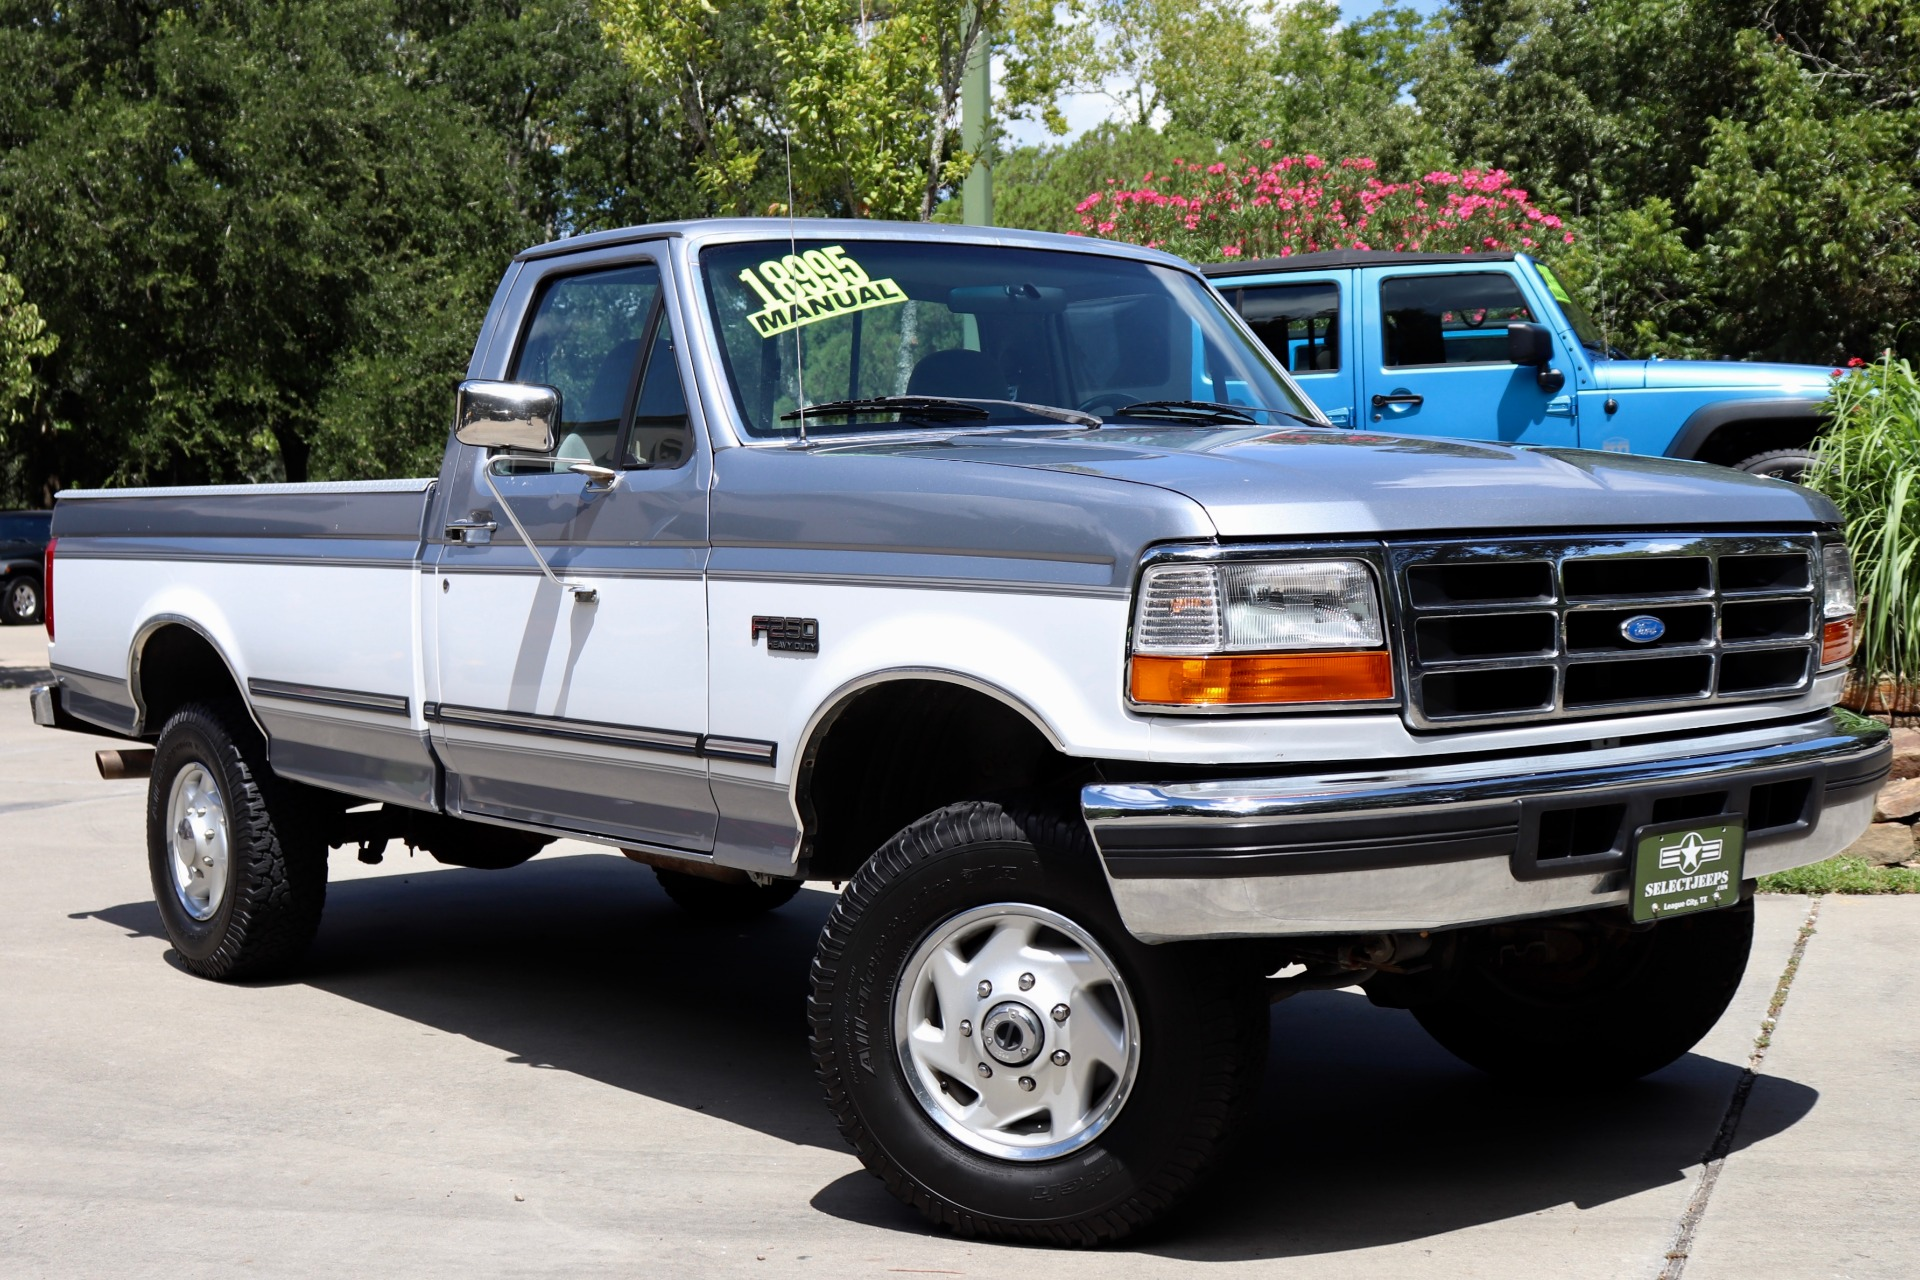 Used 1997 Ford F 250 Hd Hd Reg Cab 133 For Sale 17 995 Select Jeeps Inc Stock A66249